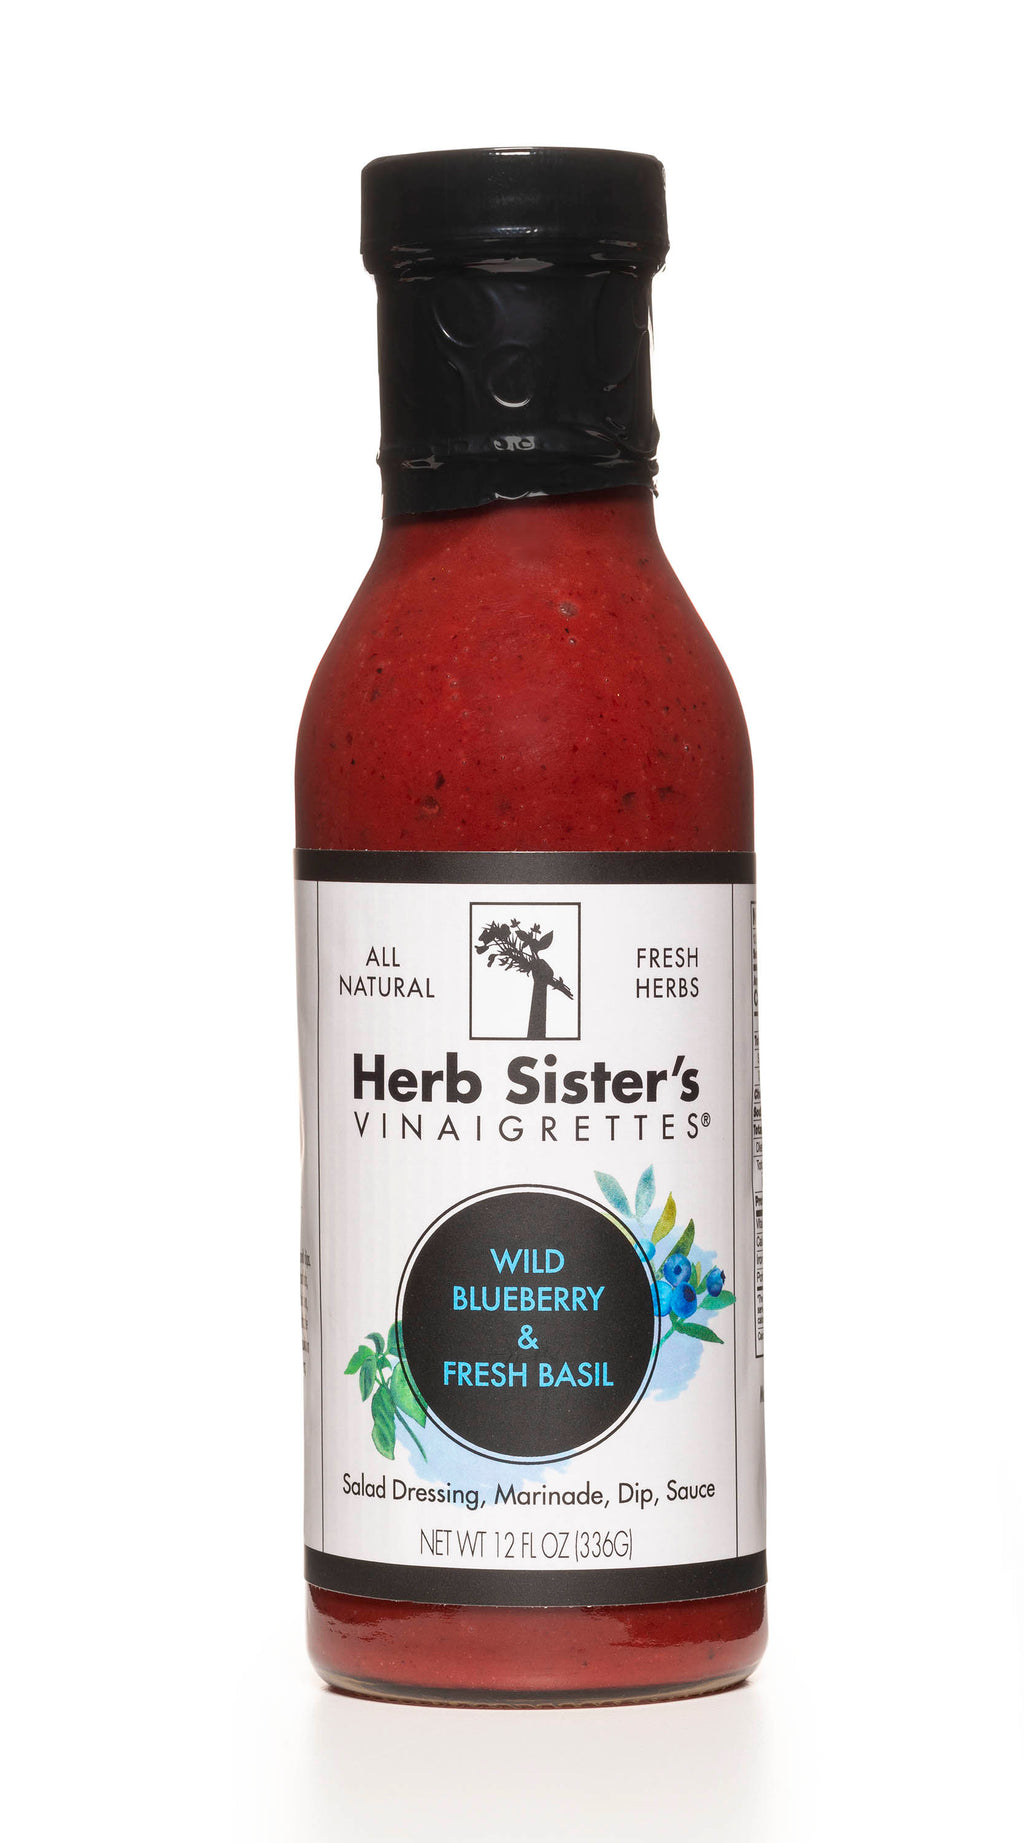 Herb Sisters Wild Blueberry and Fresh Basil Vinaigrette